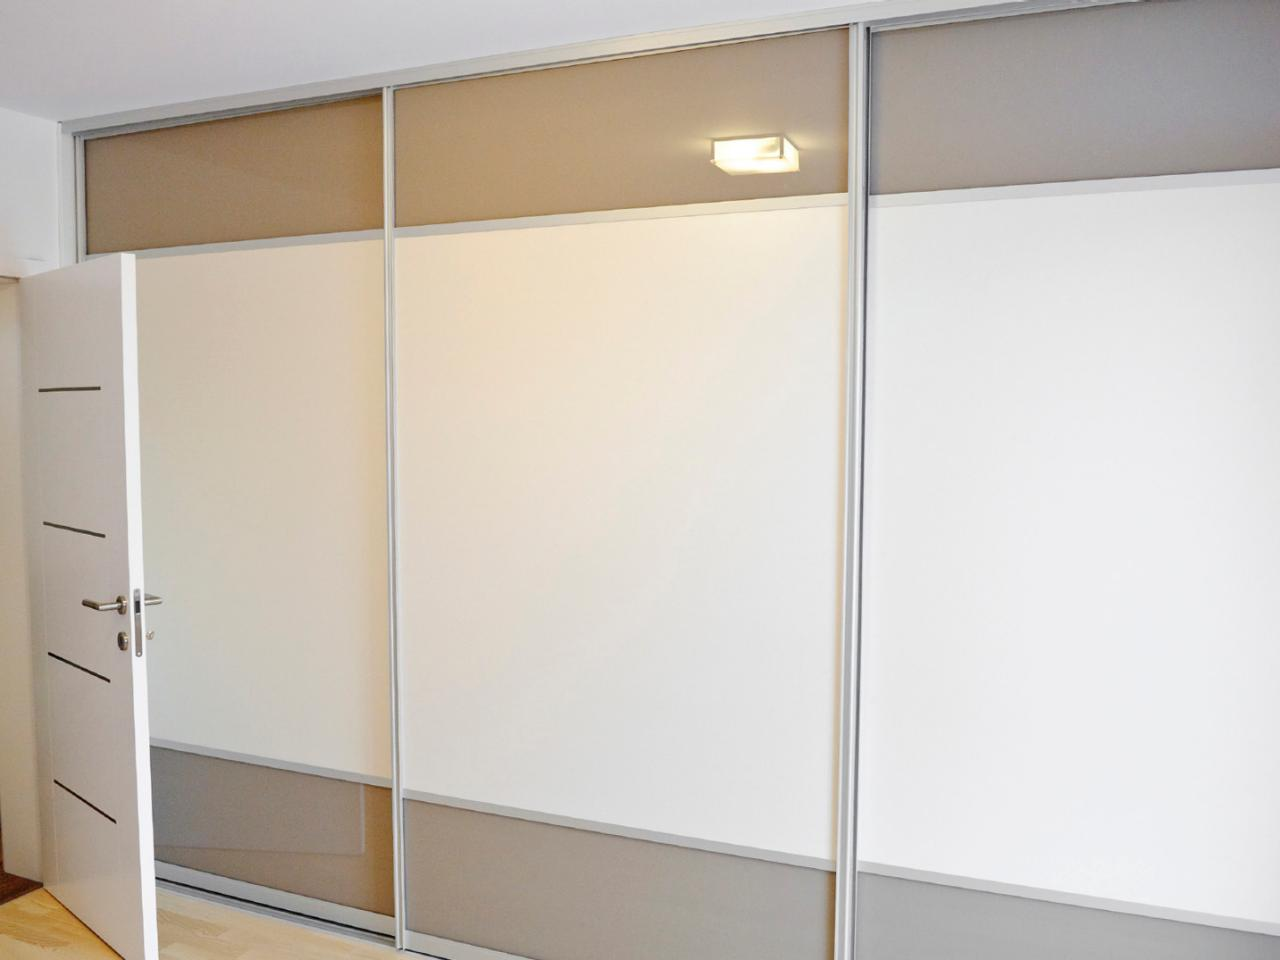 Awesome Sliding Closet Doors: Design Ideas and Options replacement sliding wardrobe doors